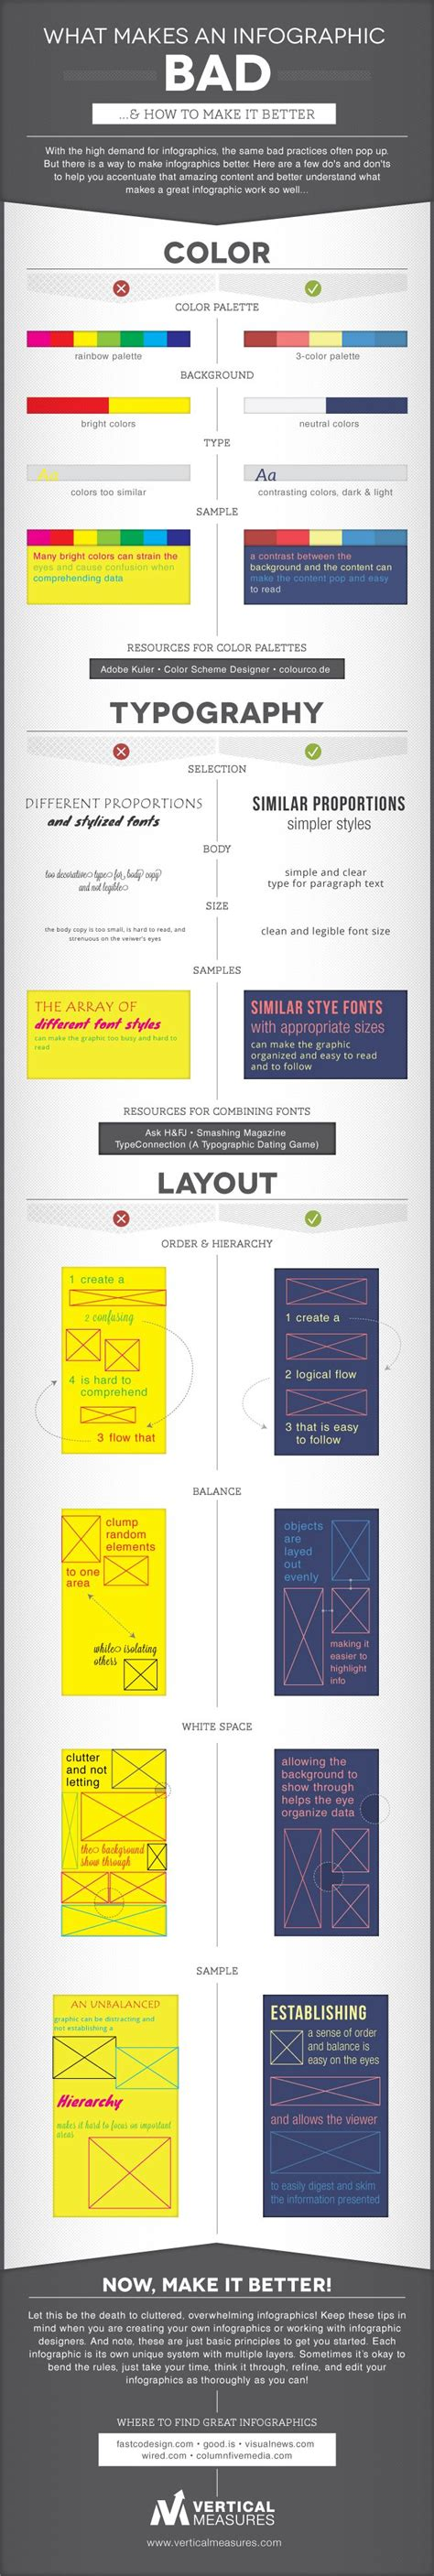 infographics how to print better infographic how to make bad infographics better designtaxi